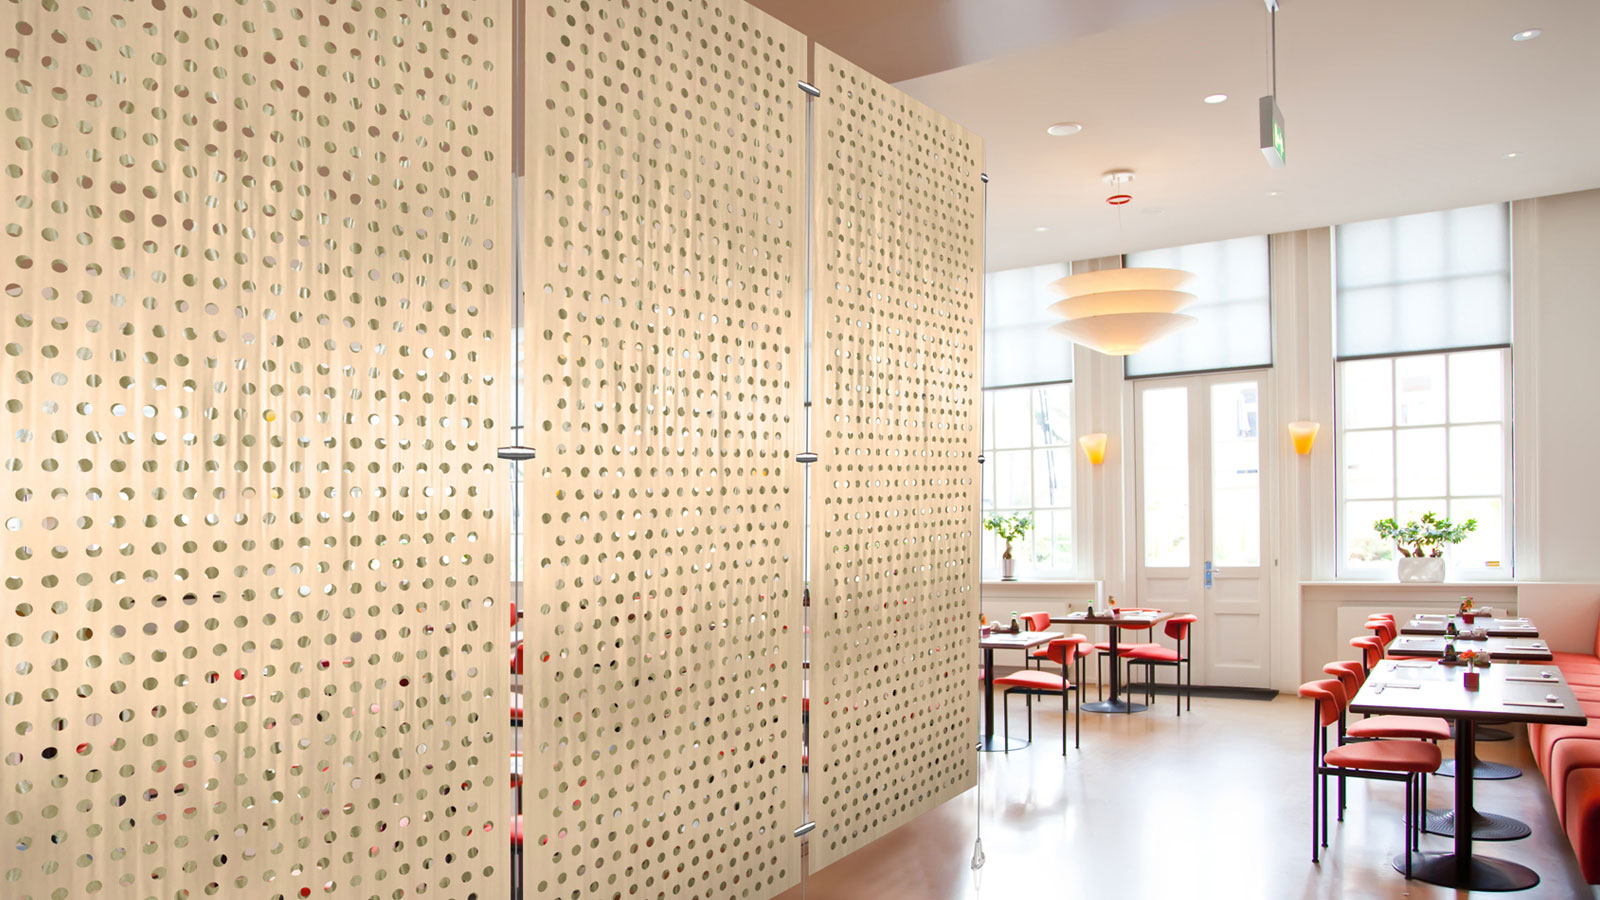 Creative Room Dividers Room Dividers Flat Moz Designs Decorative Metal And